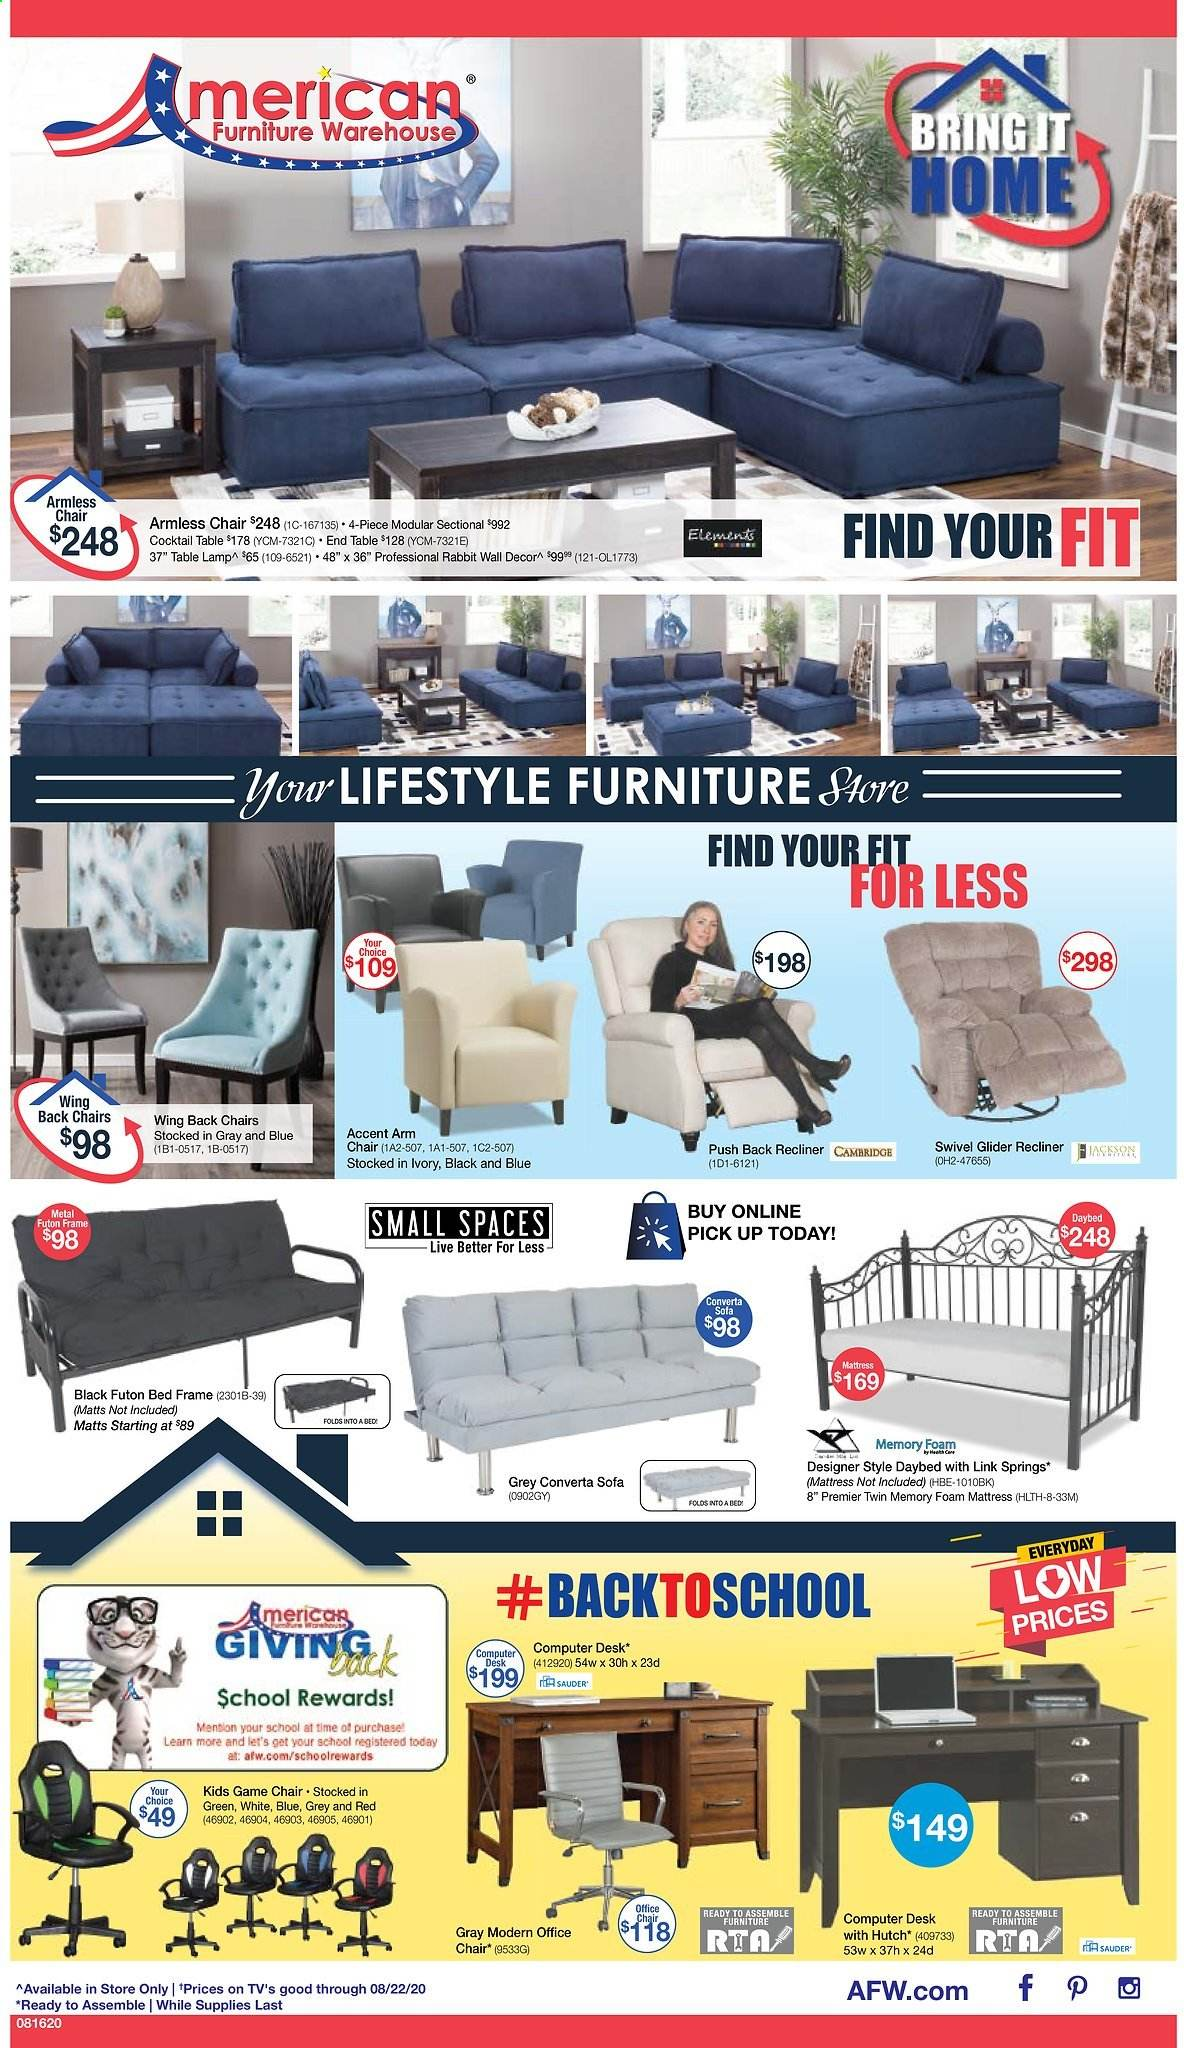 American Furniture Warehouse Flyer - 08.16.2020 - 08.22.2020 - Sales products - arm chair, bed, bed frame, daybed, end table, Furniture, lamp, mattress, rabbit, sofa, wall decor, chair, Game, computer, office chair, foam mattress, table lamp. Page 1.